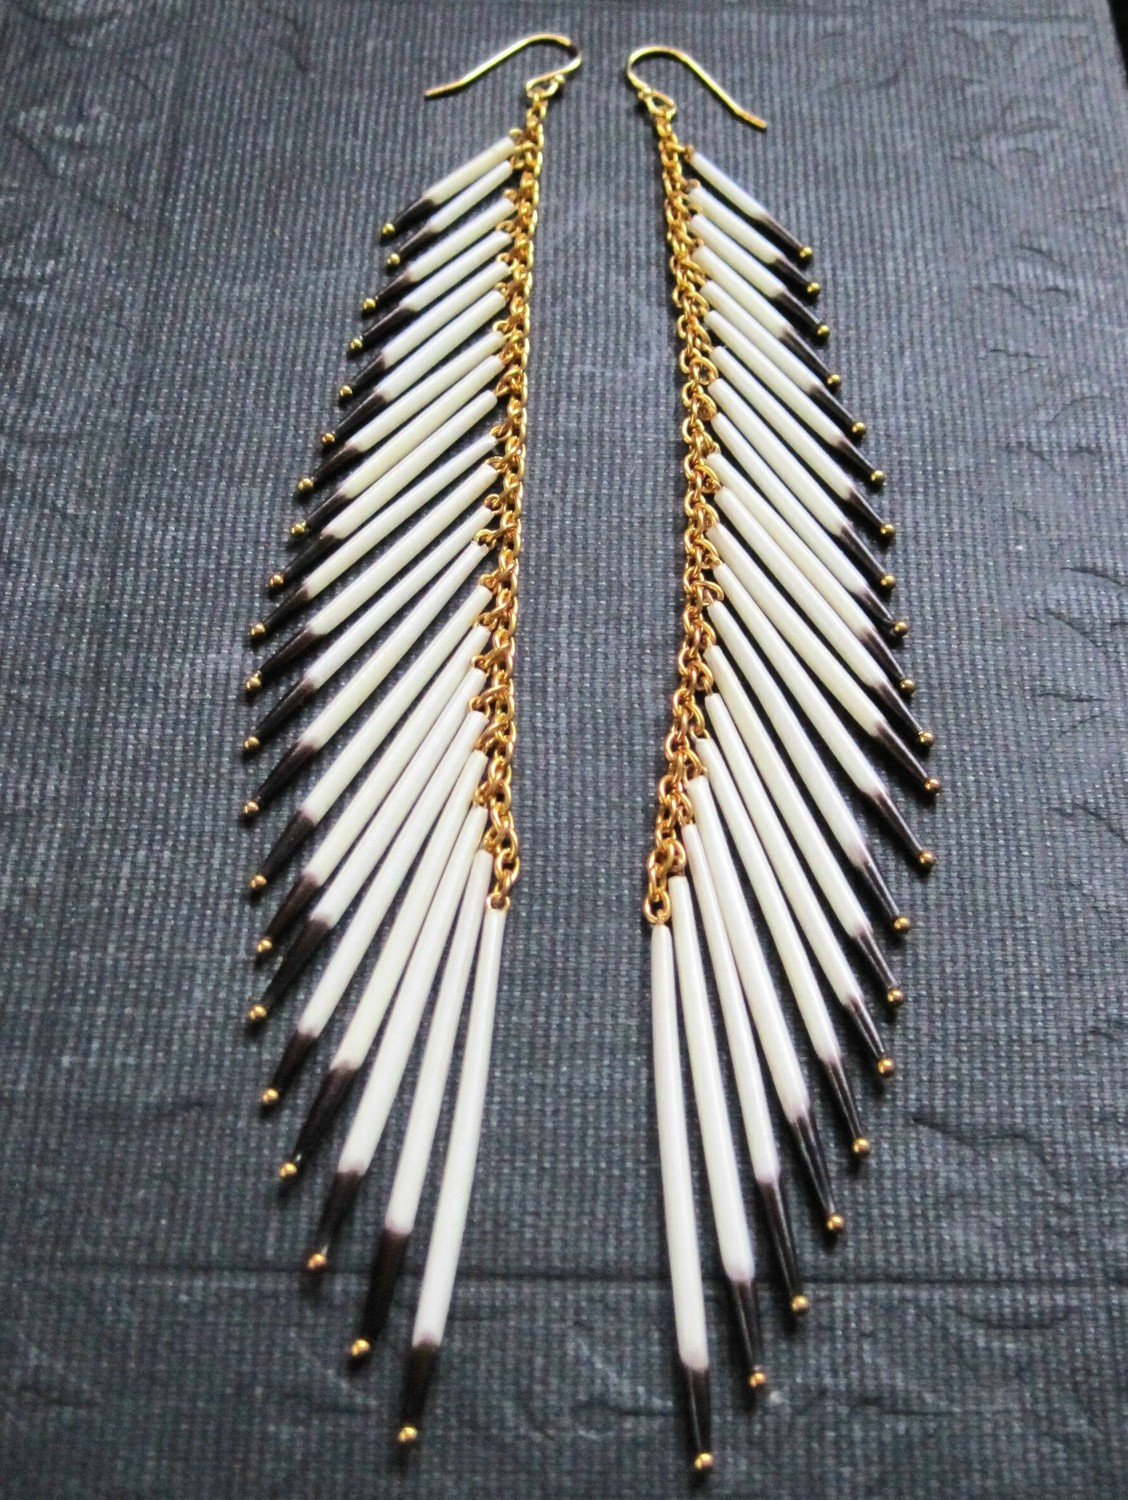 Porcupine Quill Jewelry Gypsy - Porcupine Quill